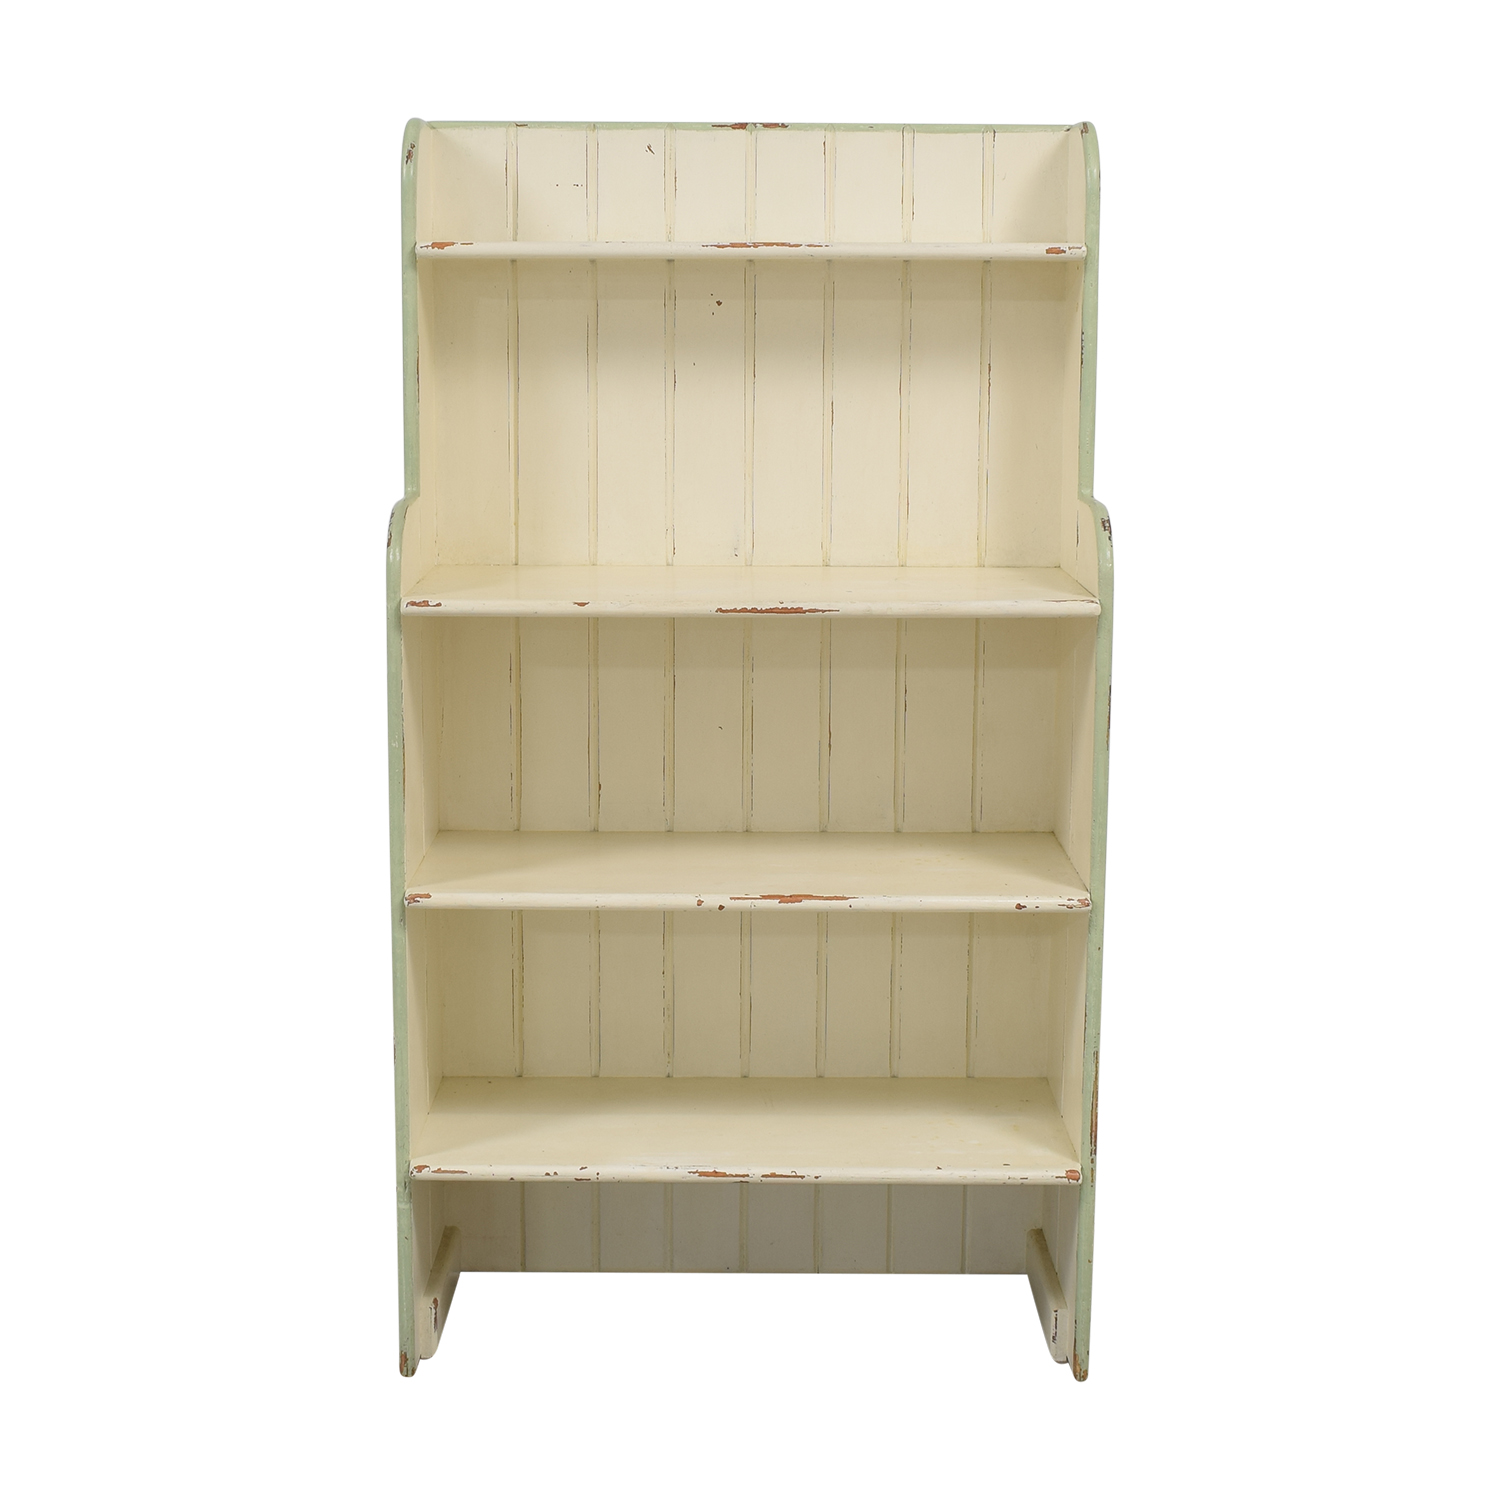 shop Little Folk Art Tiered Bookshelf Little Folk Art Bookcases & Shelving